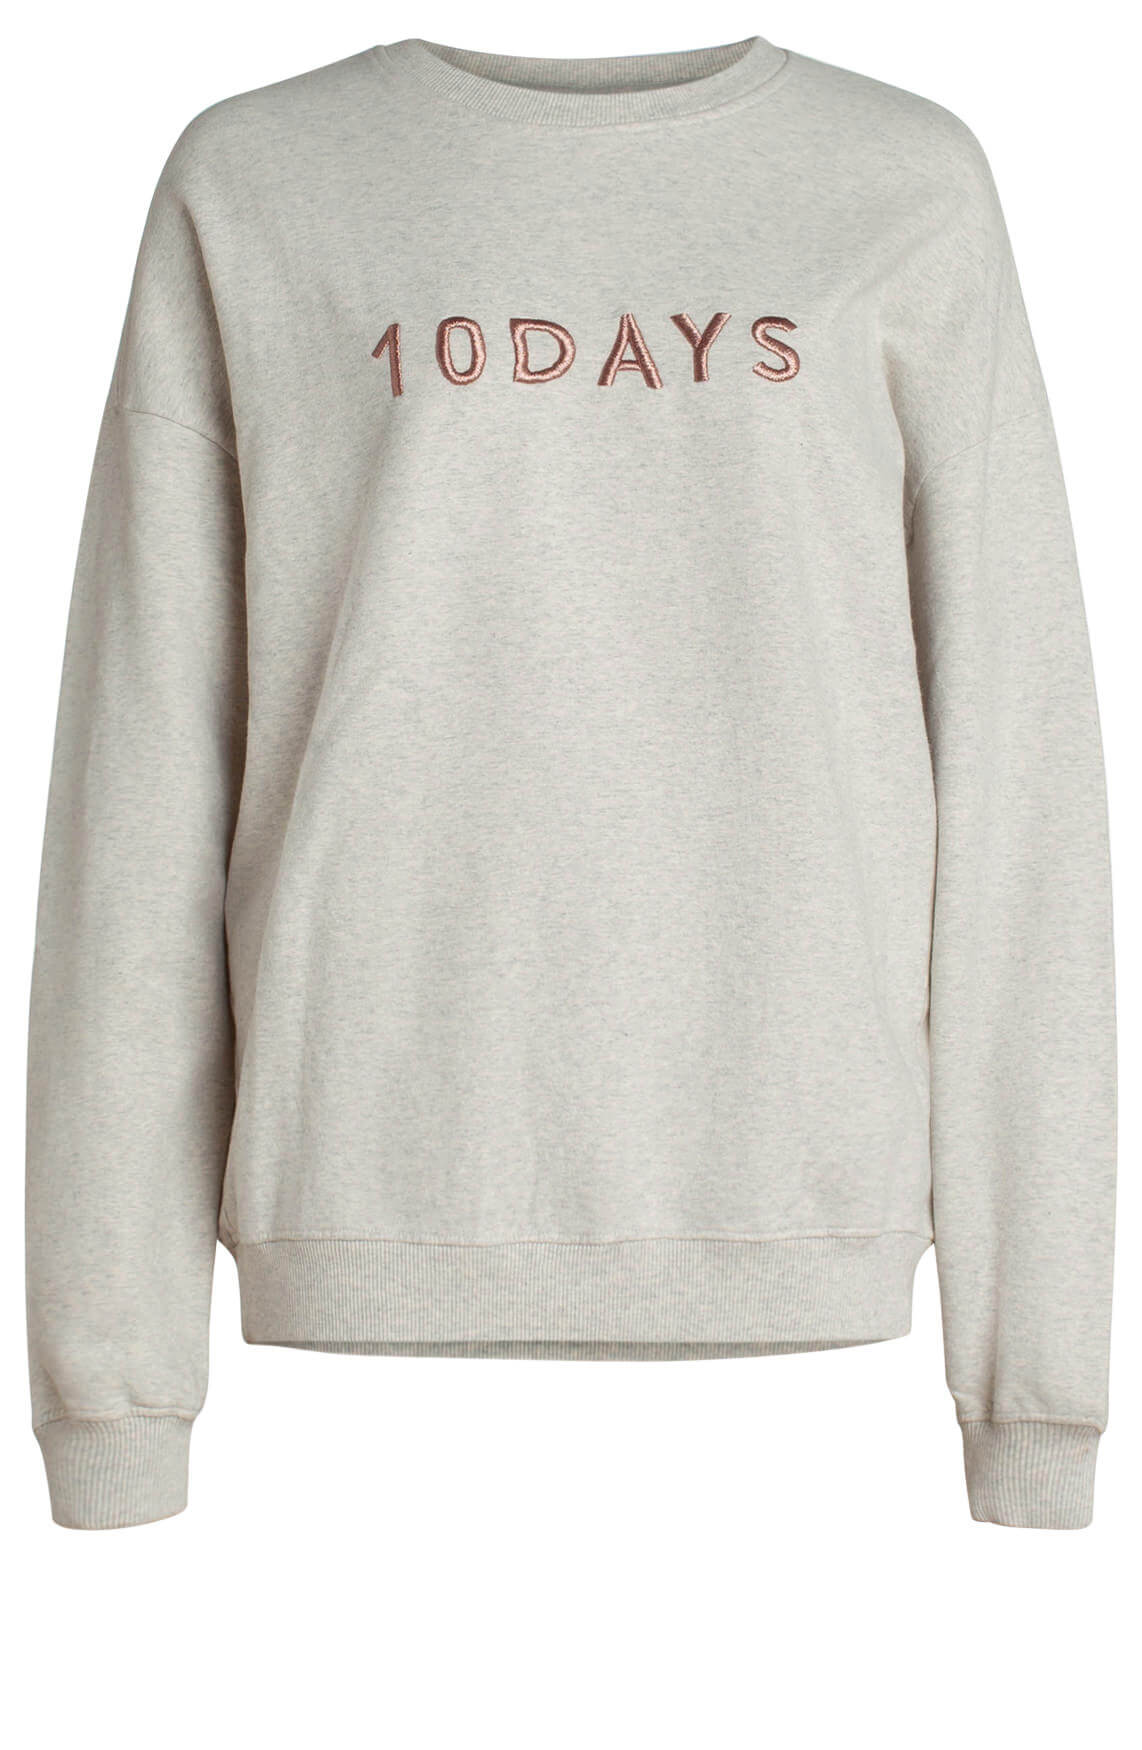 10 Days Dames Gemêleerde sweater met tekst wit